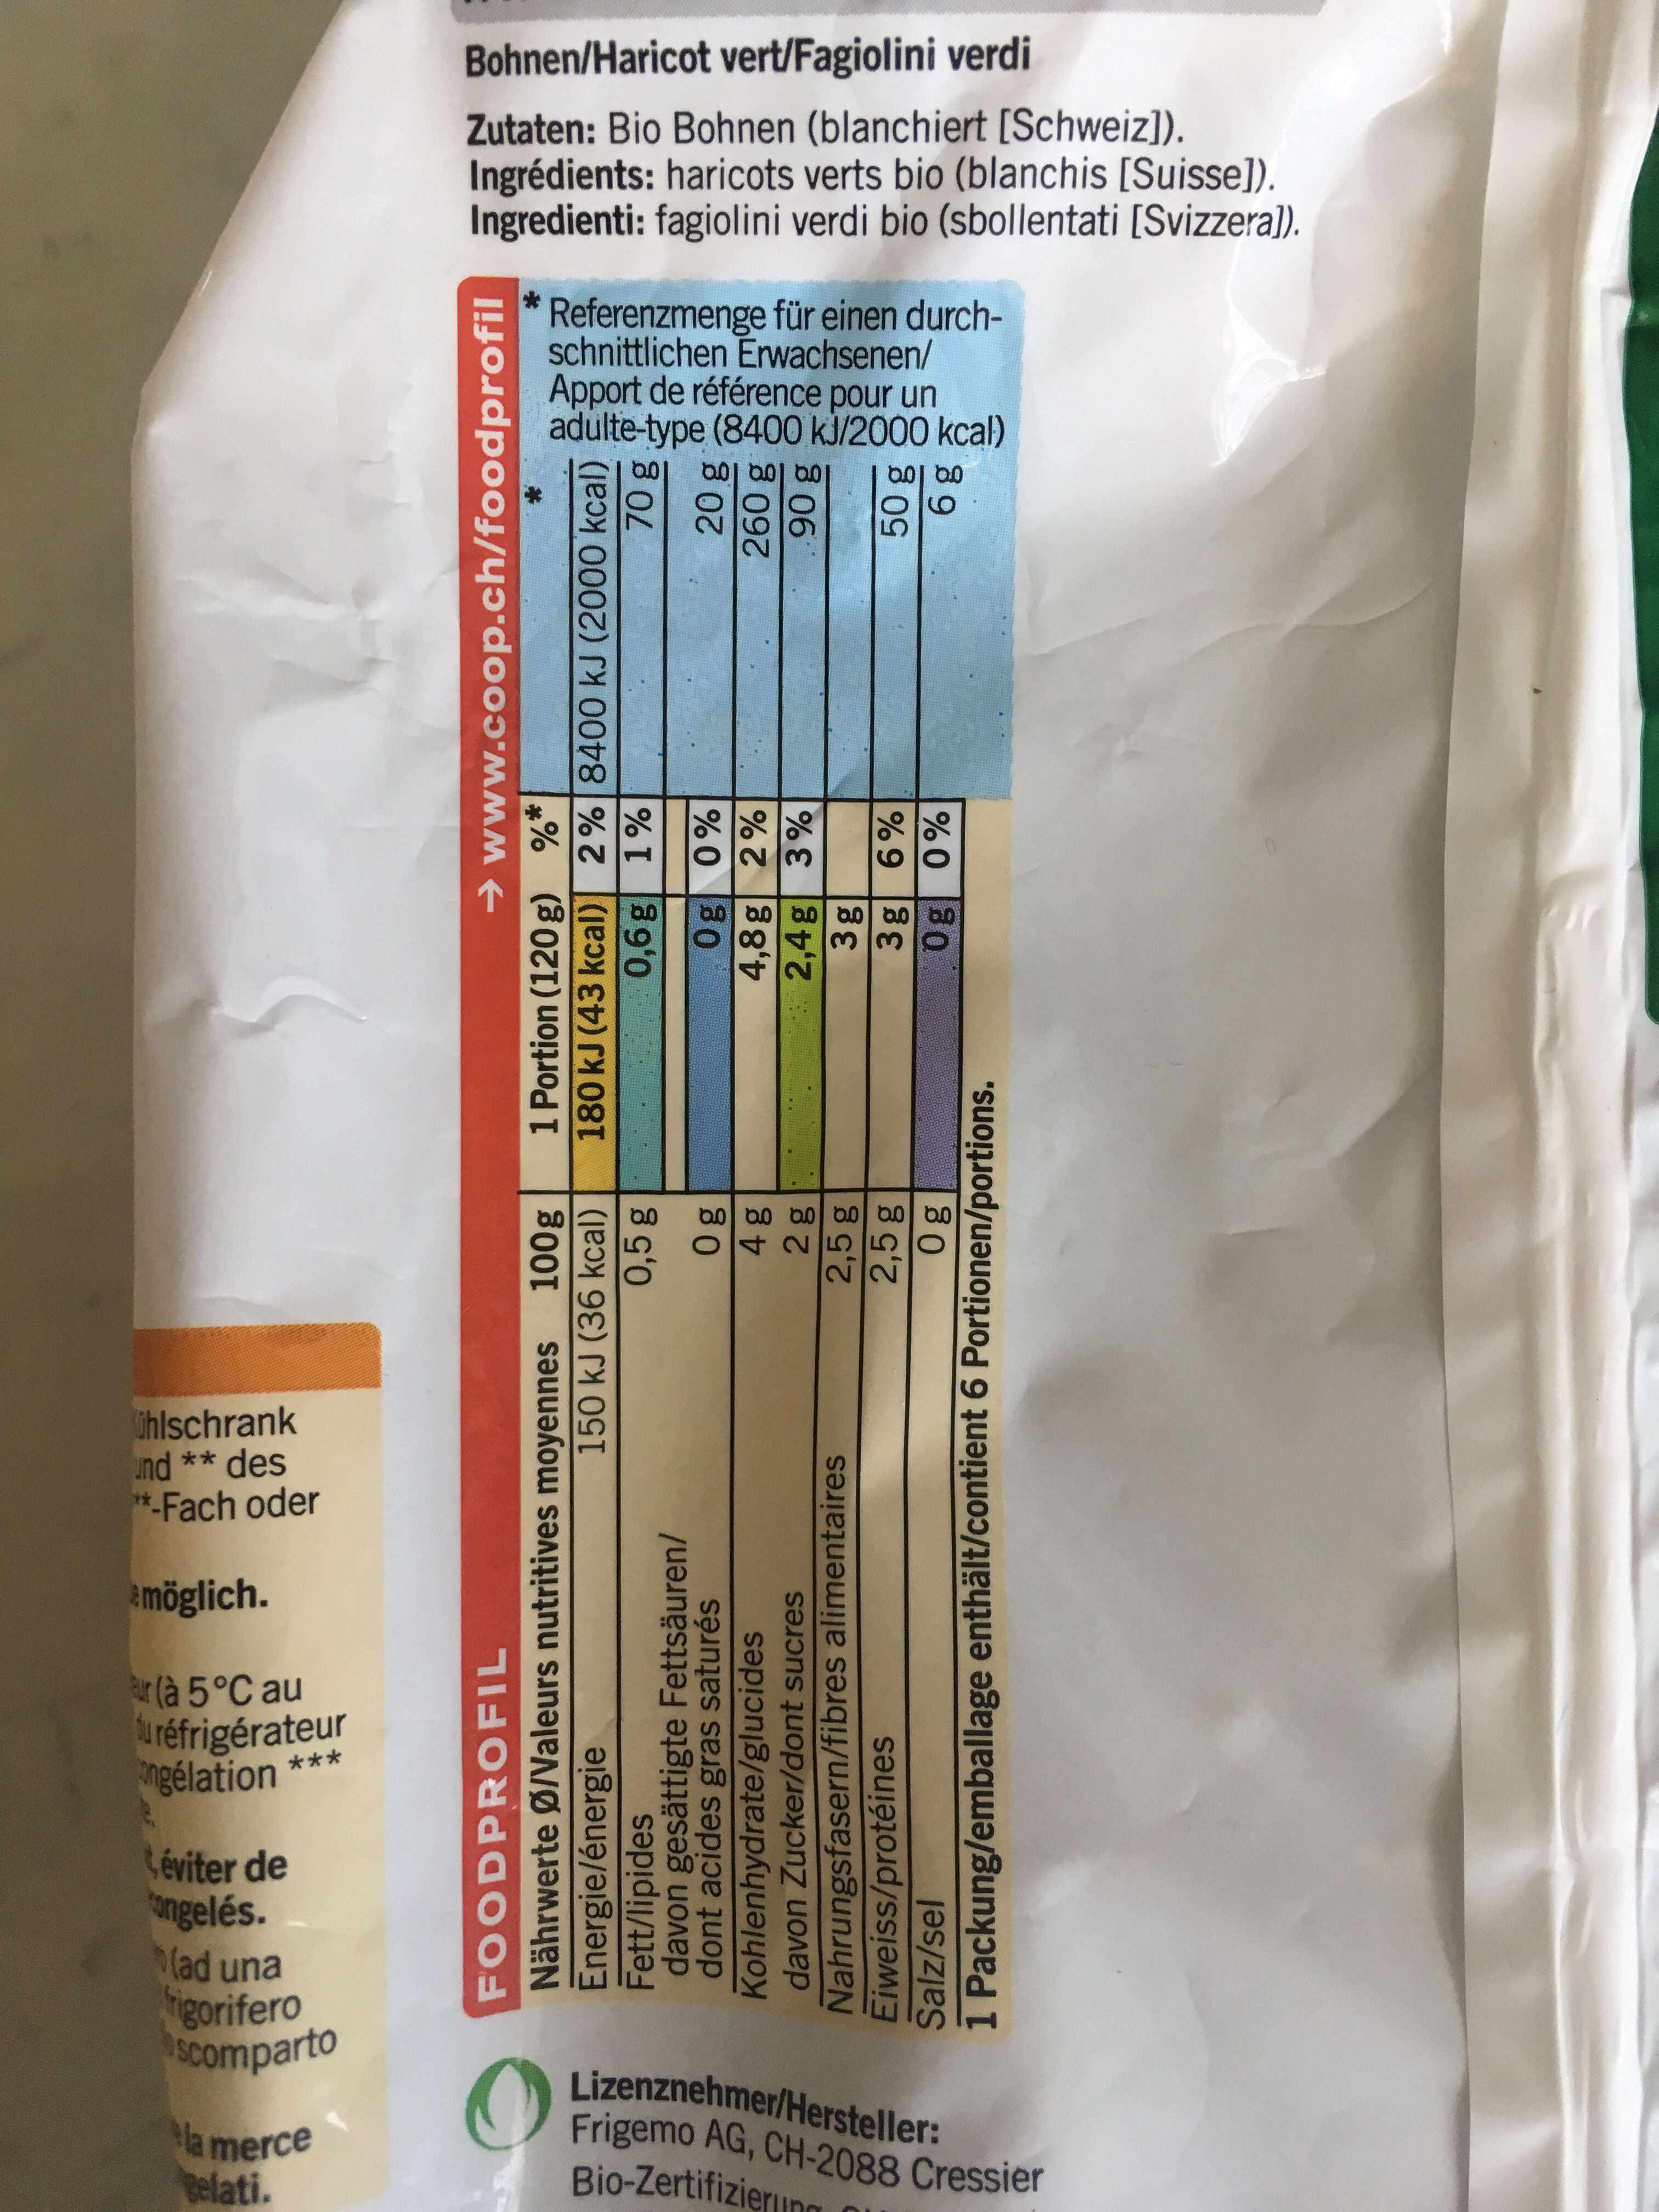 Haricots verts fins - Nutrition facts - fr